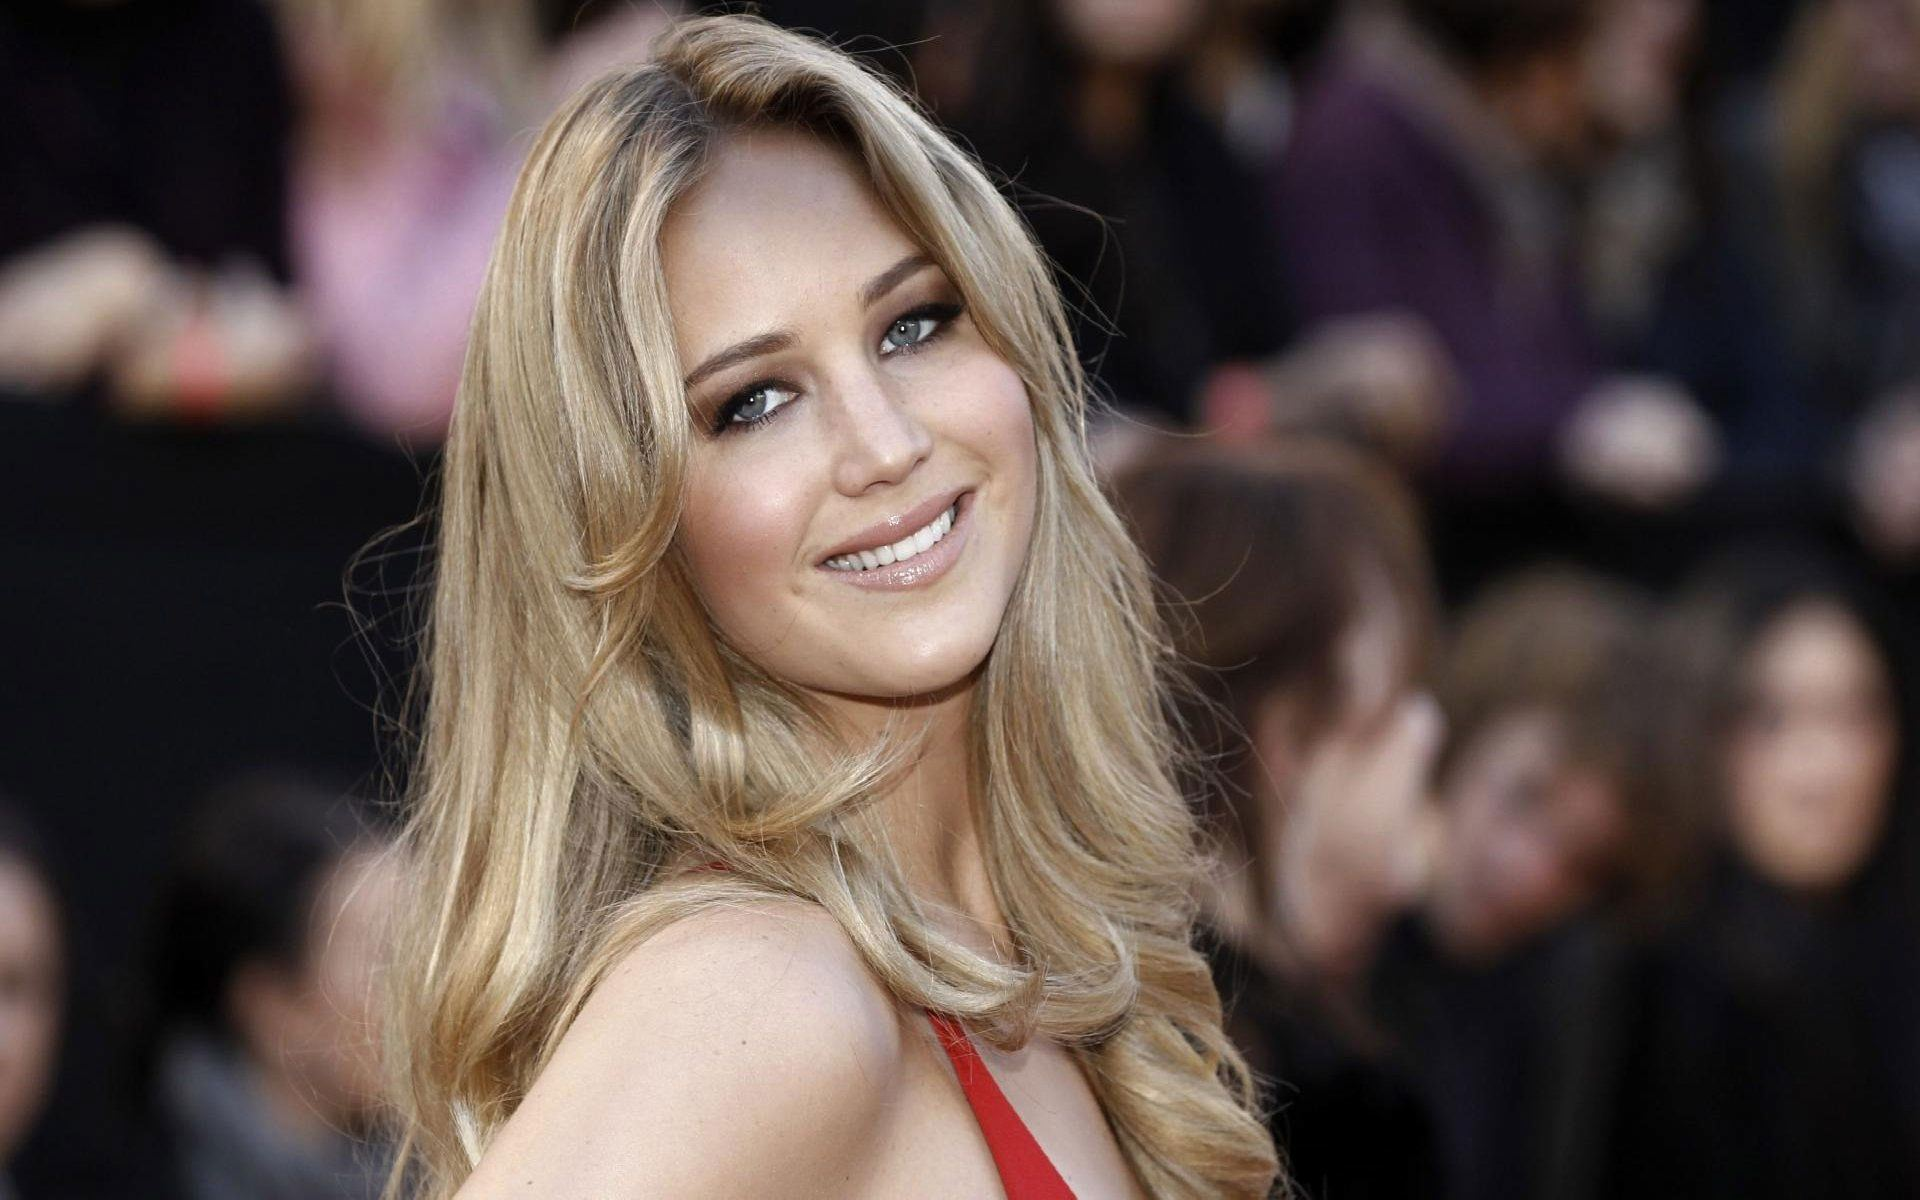 jennifer lawrence wallpaper widescreen - photo #9